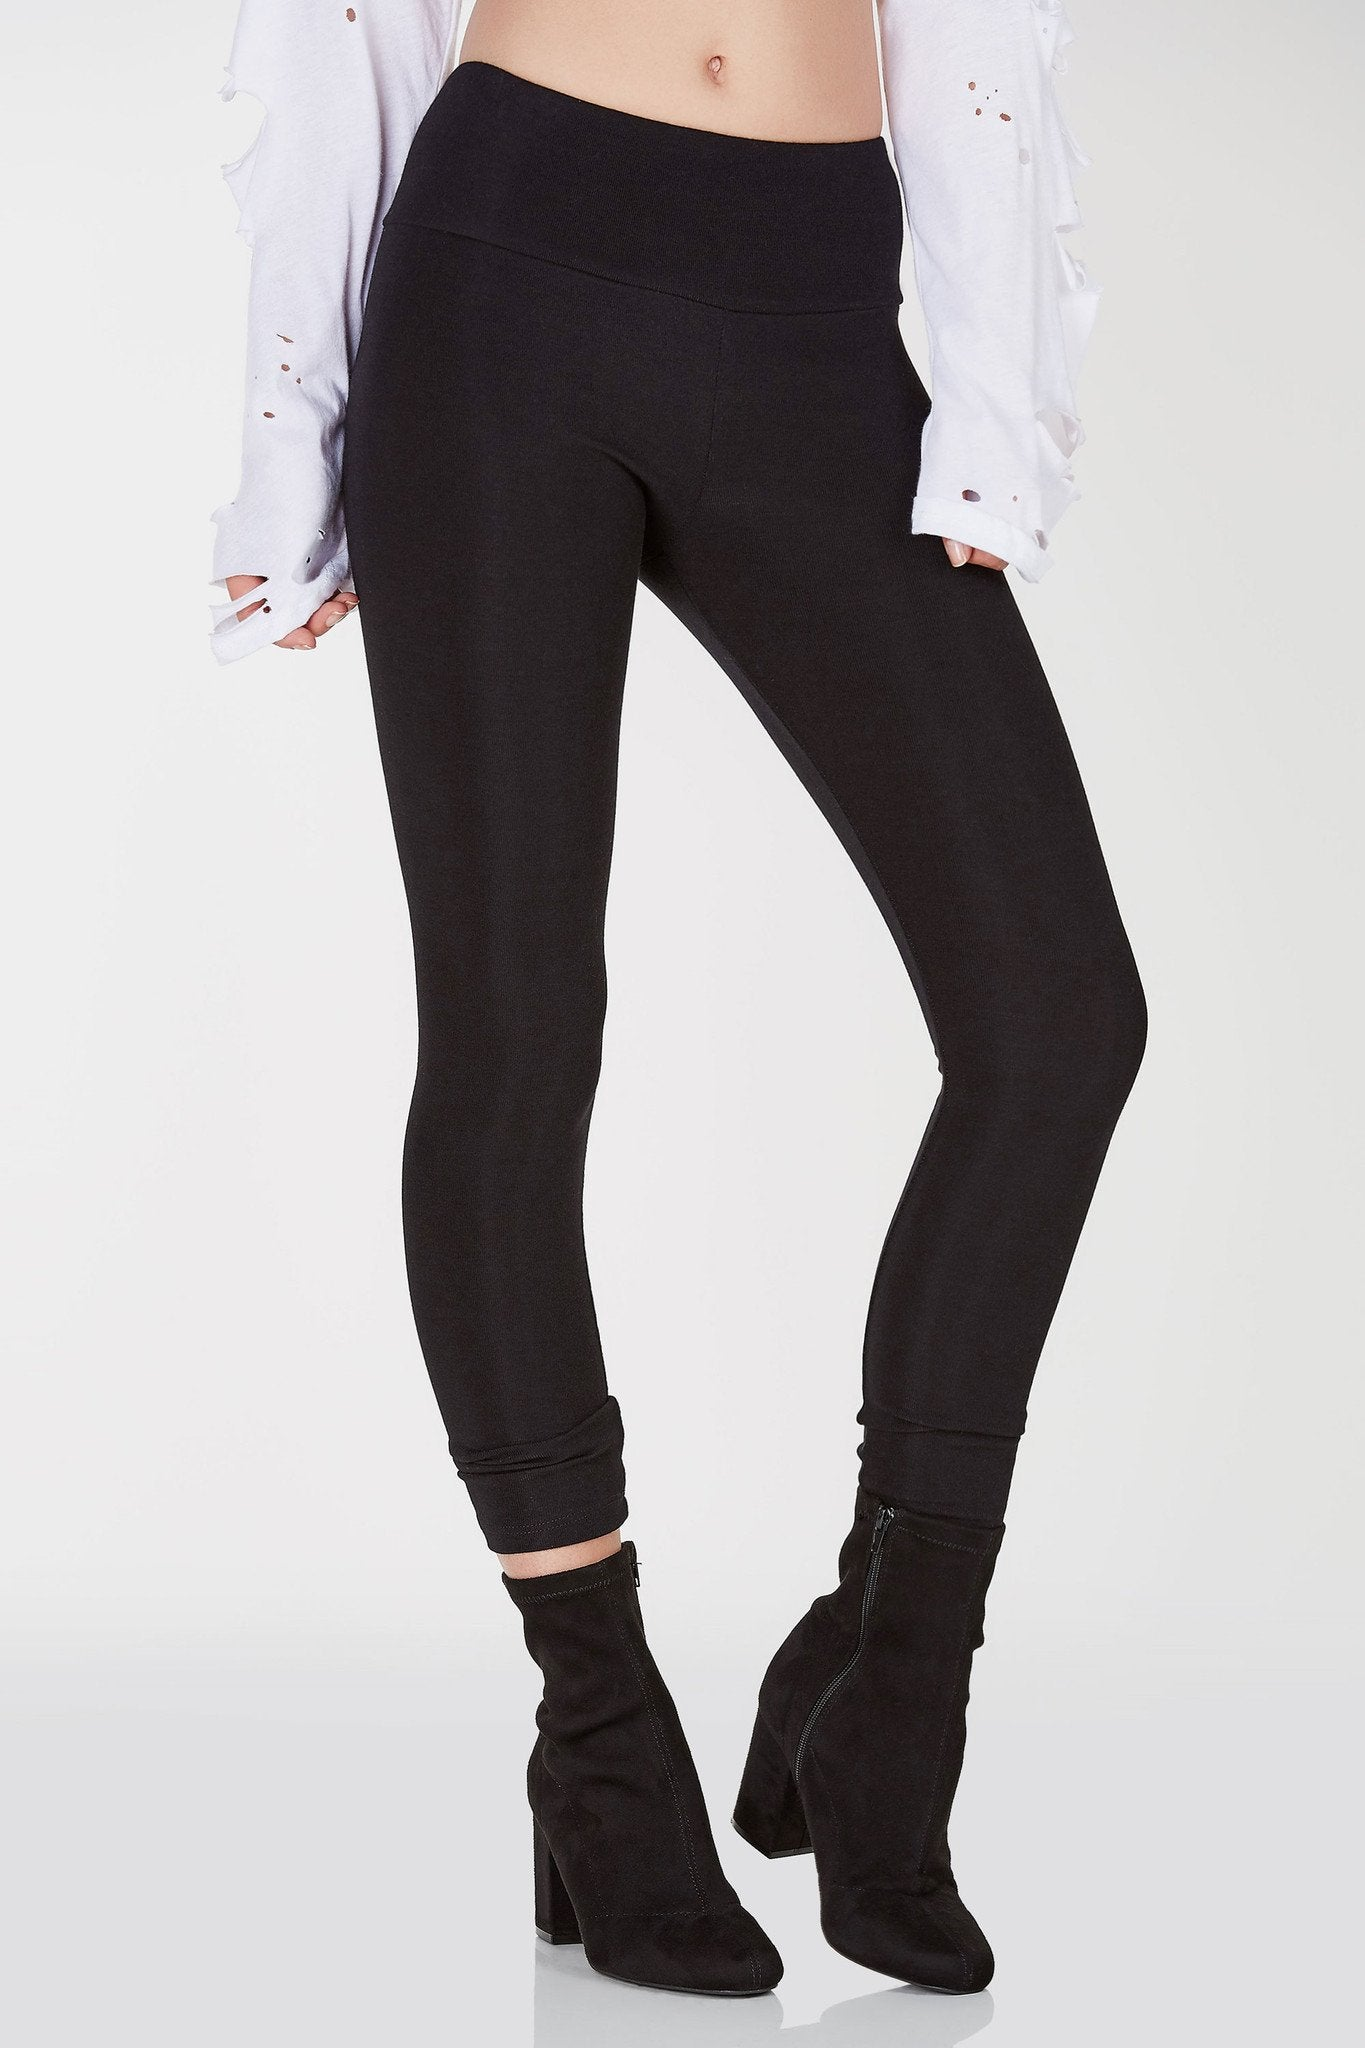 Basic stretchy leggings with mid rise waist that can be folded over. Straight hem with body hugging fit.